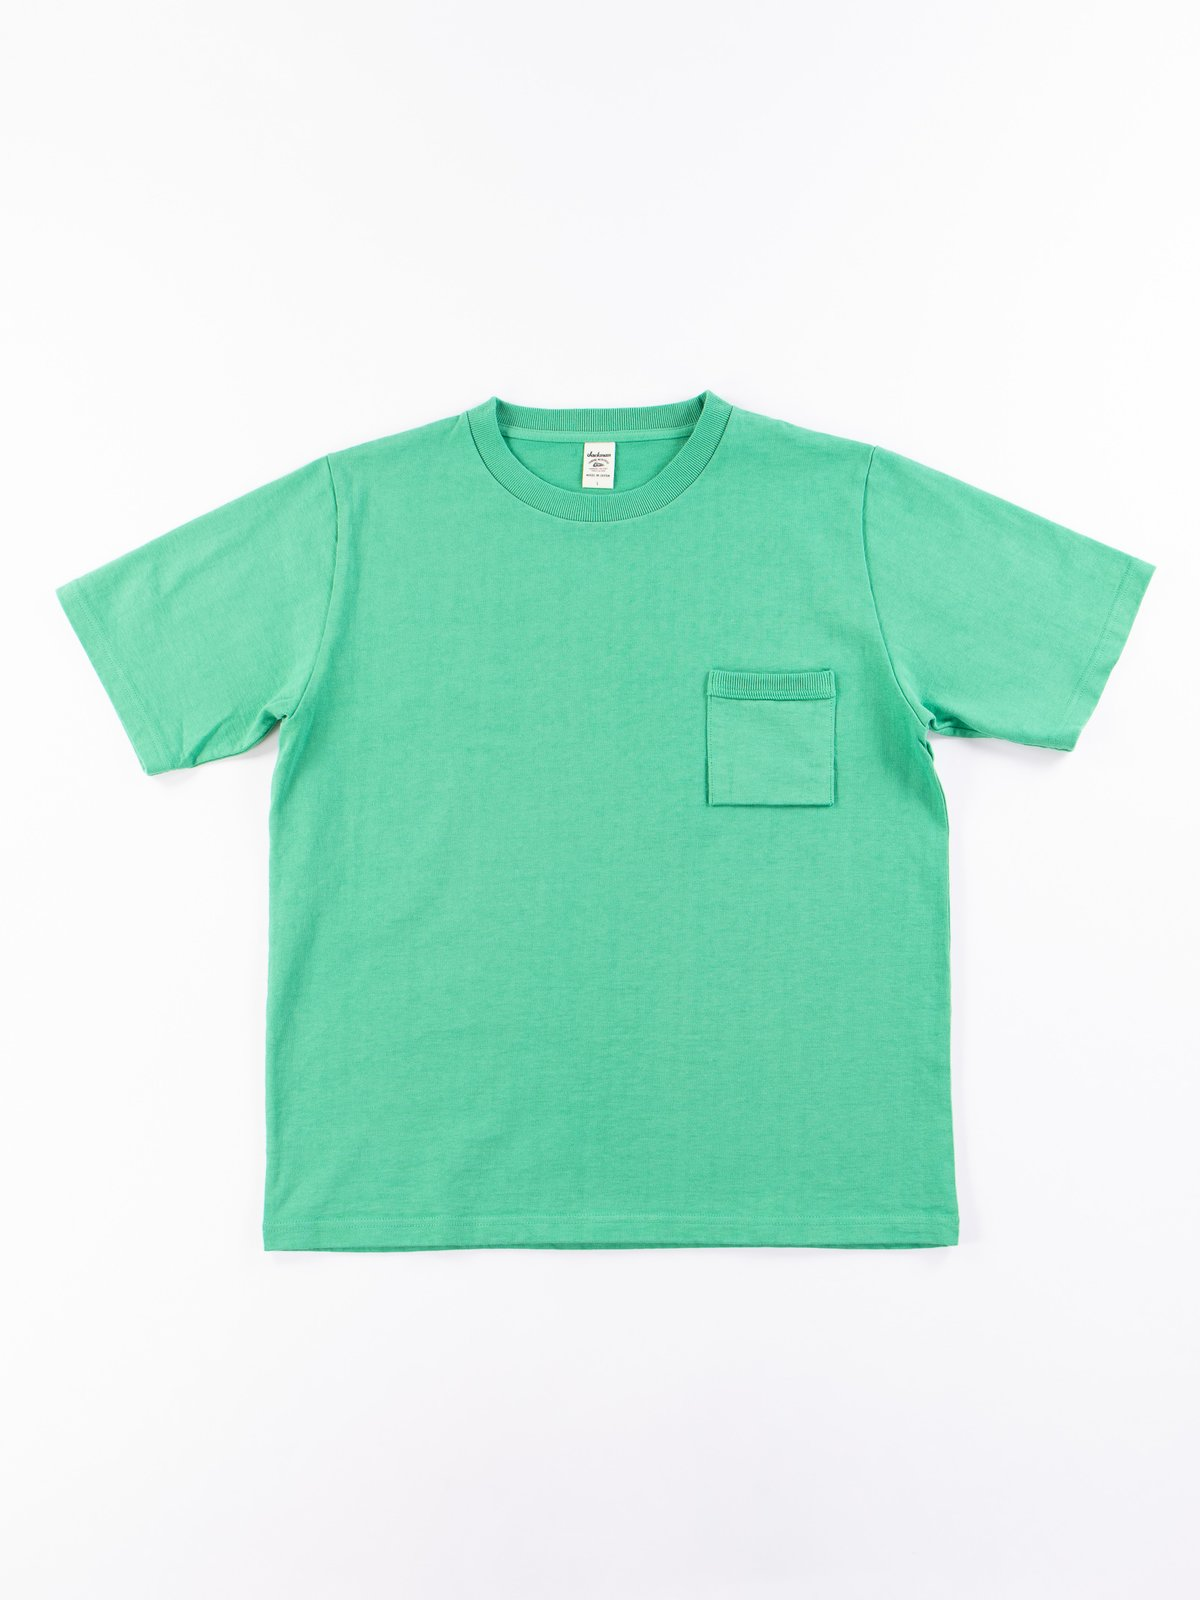 Kelly Green Dotsume Pocket T–Shirt - Image 1